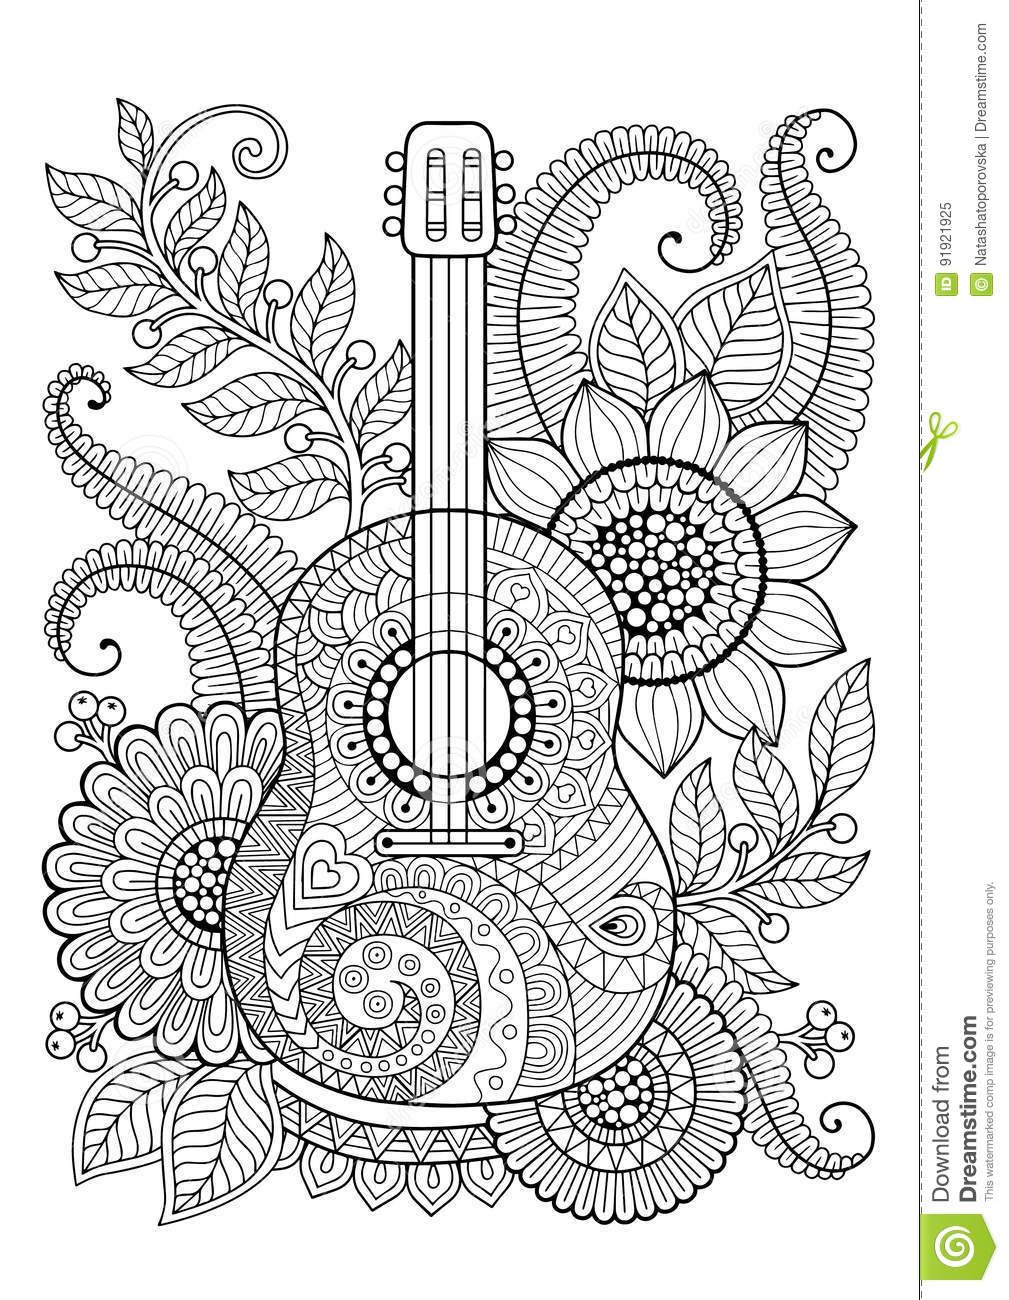 Illustration About Coloring Book For Adult And Relax Guitar And Flowers Illustration Of Coloring Ba Mandala Coloring Pages Coloring Books Mandala Design Art